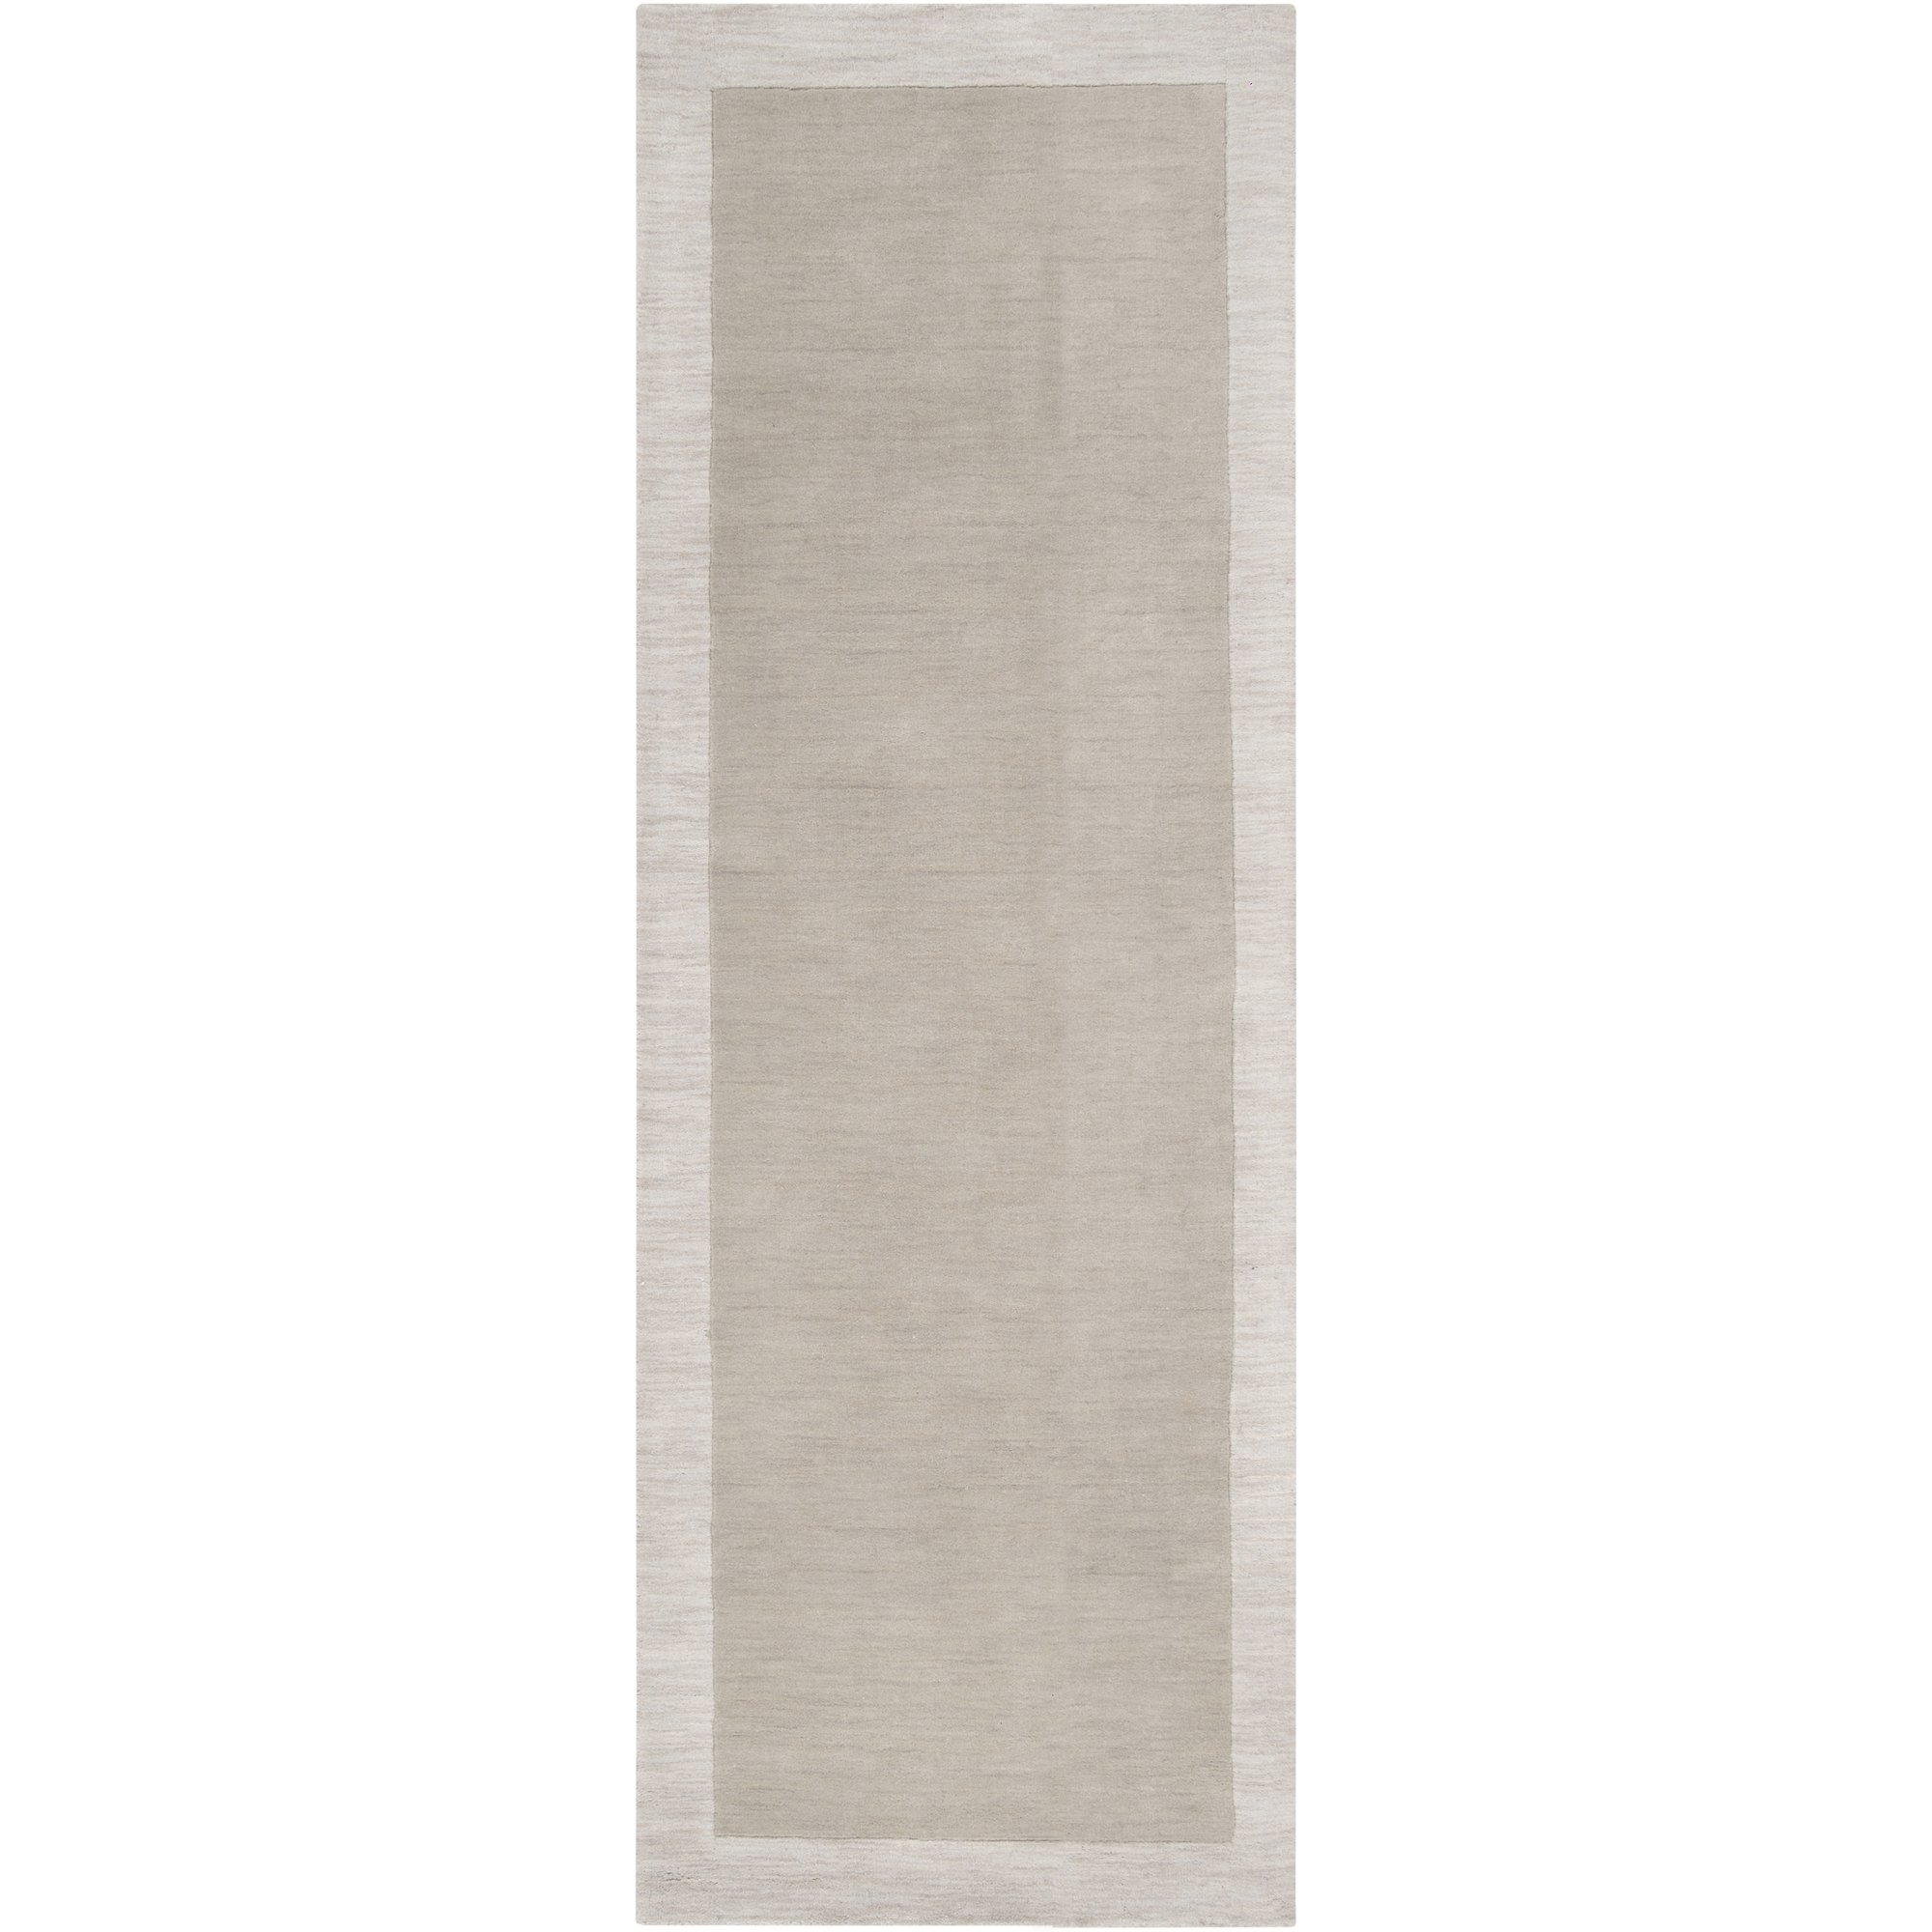 angelo:HOME by Surya Madison Square MDS-1001 Transitional Hand Loomed 100% Wool Oatmeal 2'6'' x 8' Runner